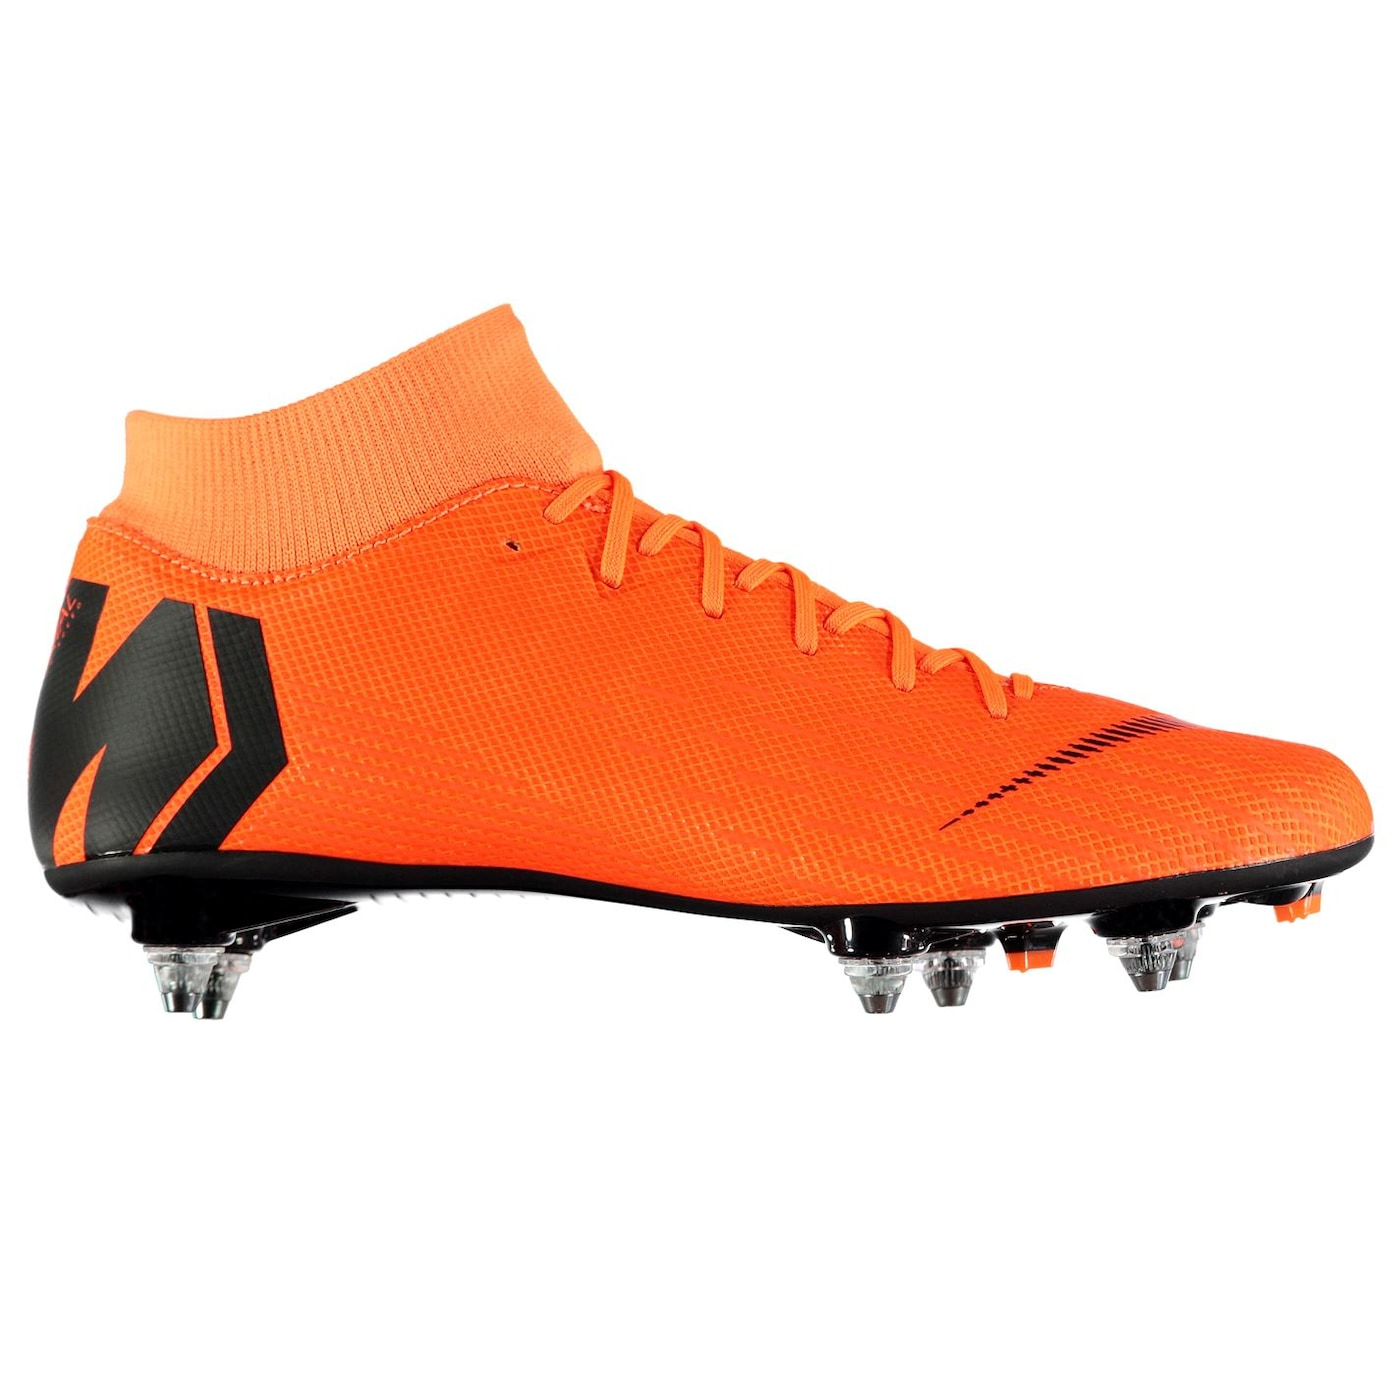 af660abc1 Nike Mercurial Superfly Academy Mens SG Football Boots